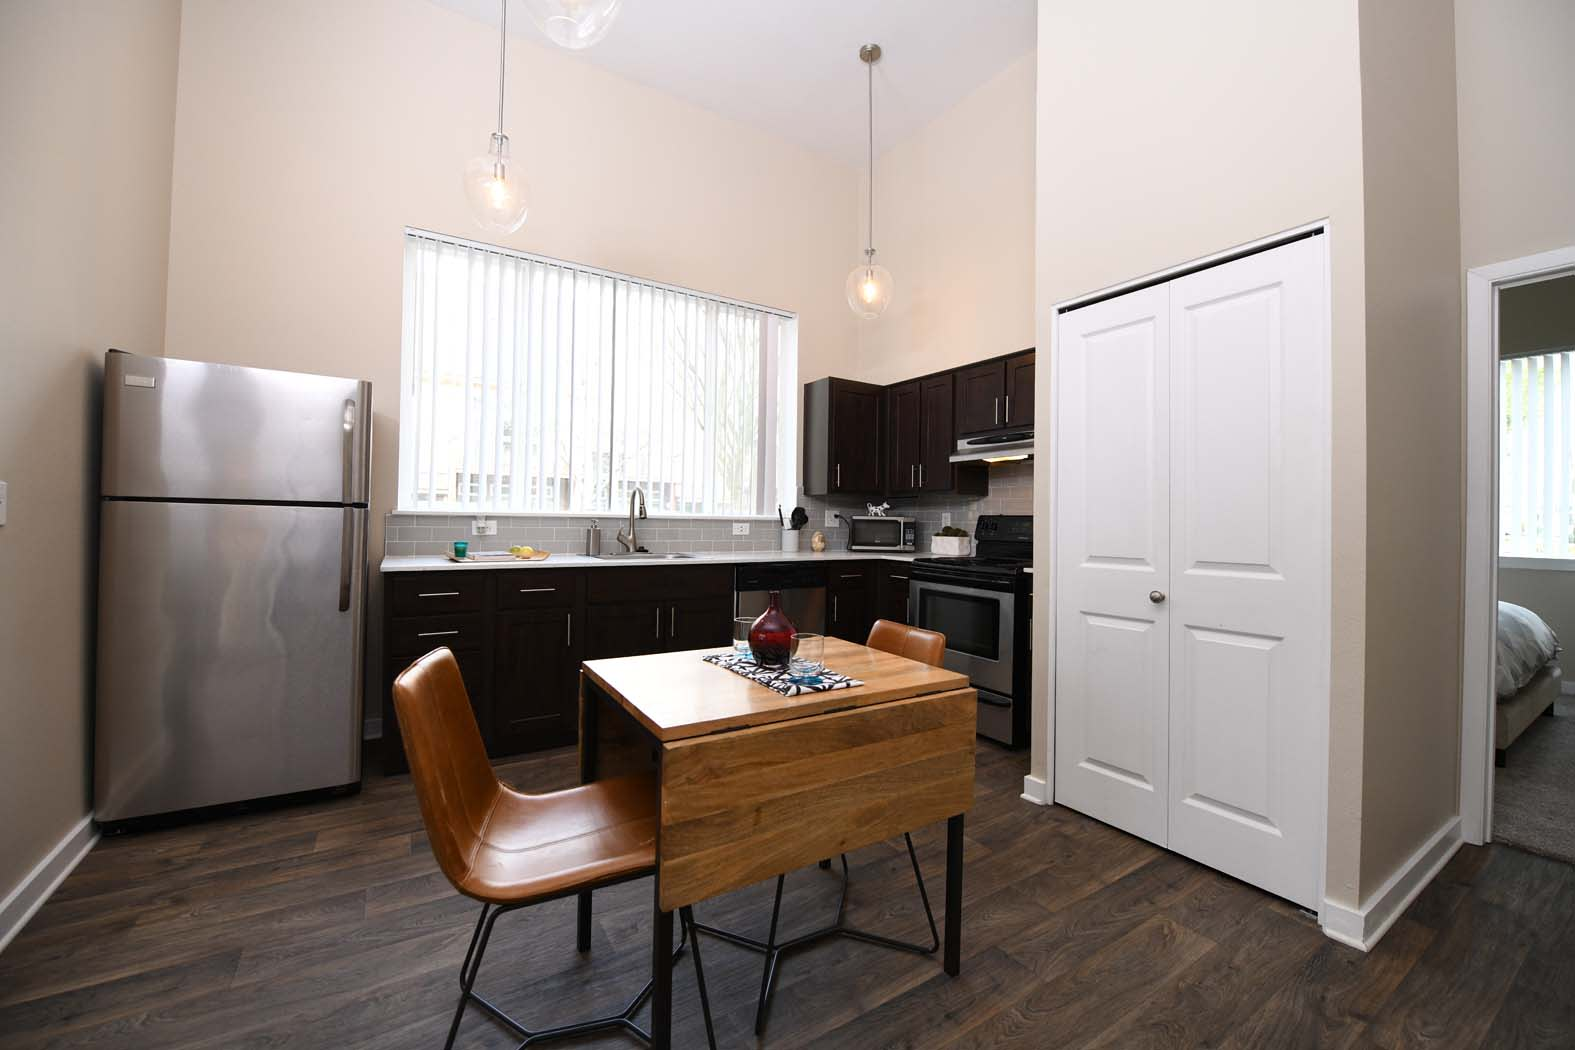 Dinning Table in Kitchen at Russellville Commons, Portland, OR, 97216